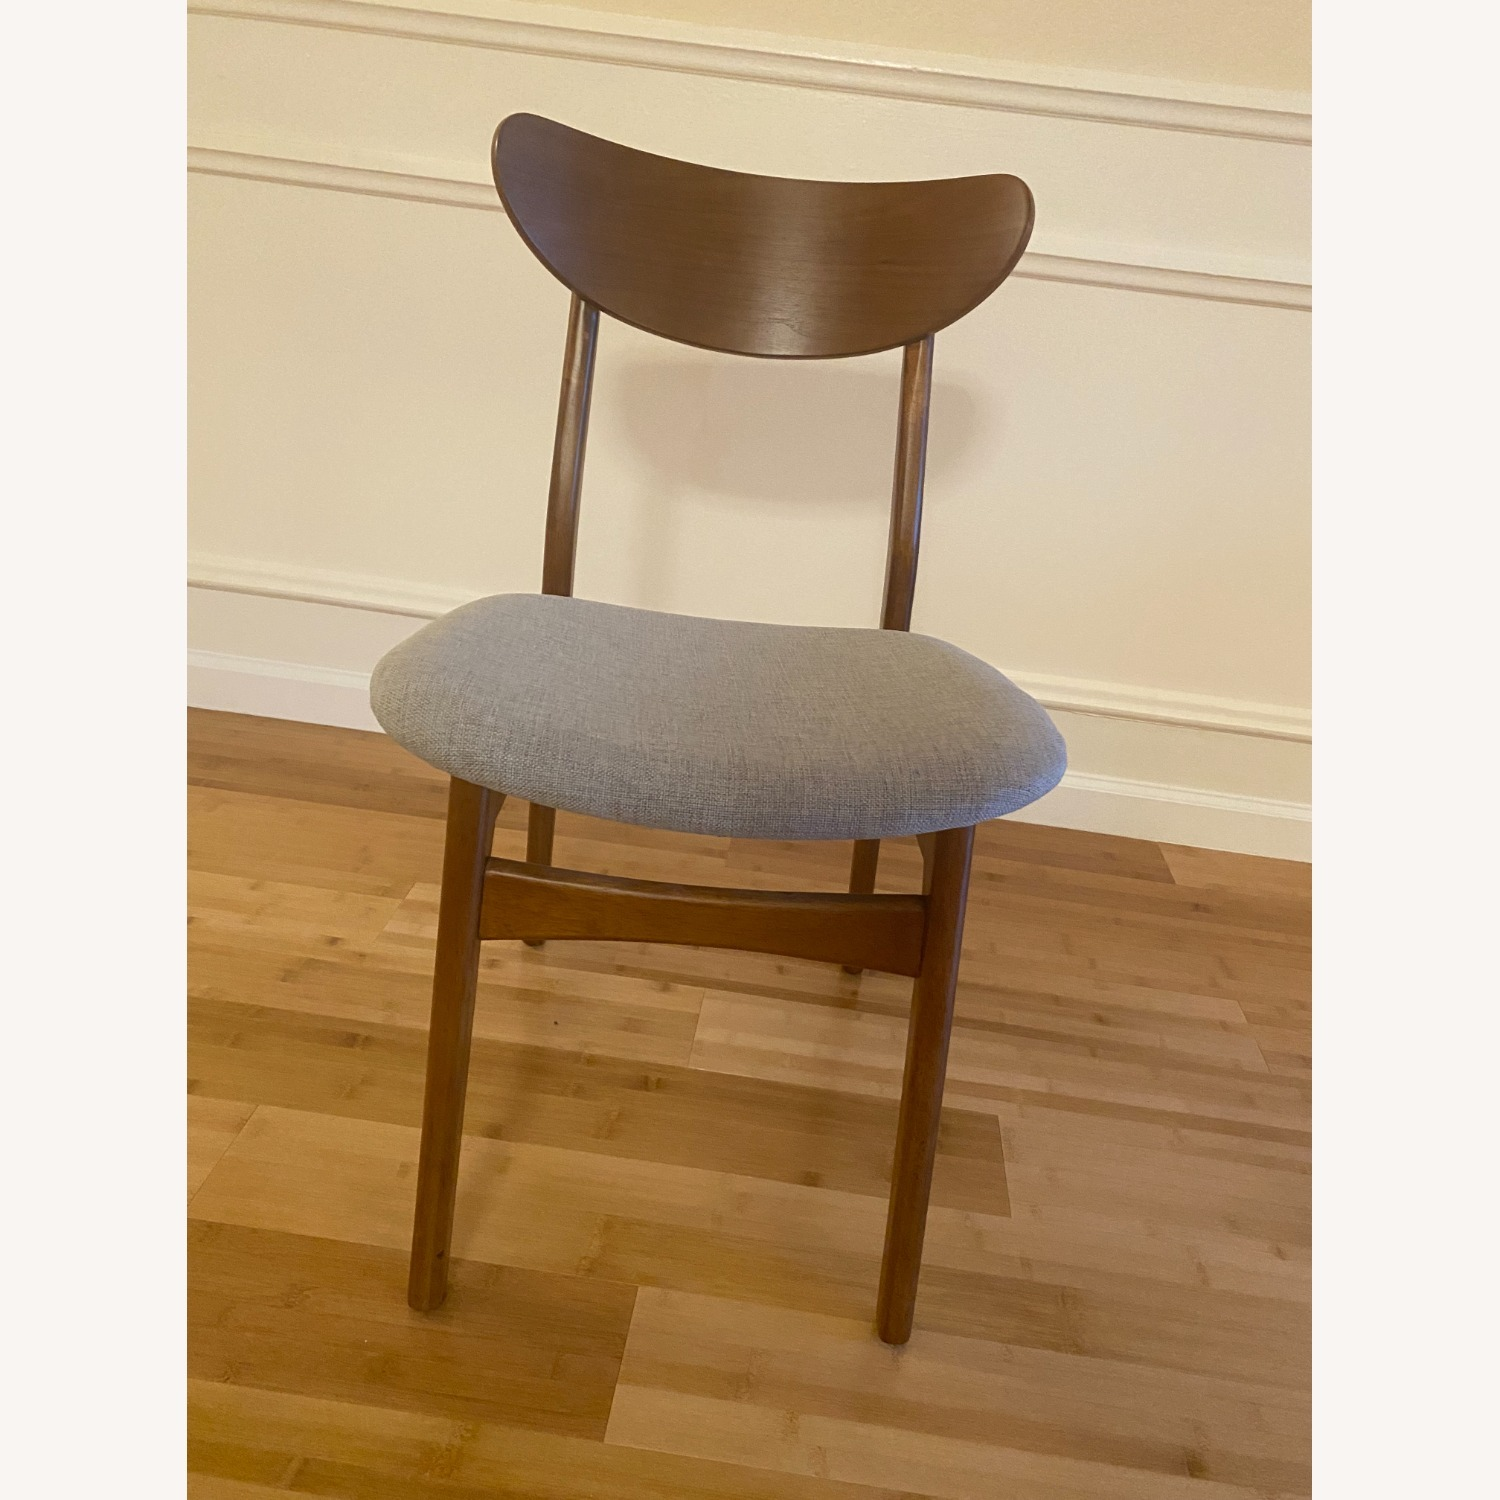 West Elm Classic Caf Upholstered Dining Chair- Set of 2 - image-3